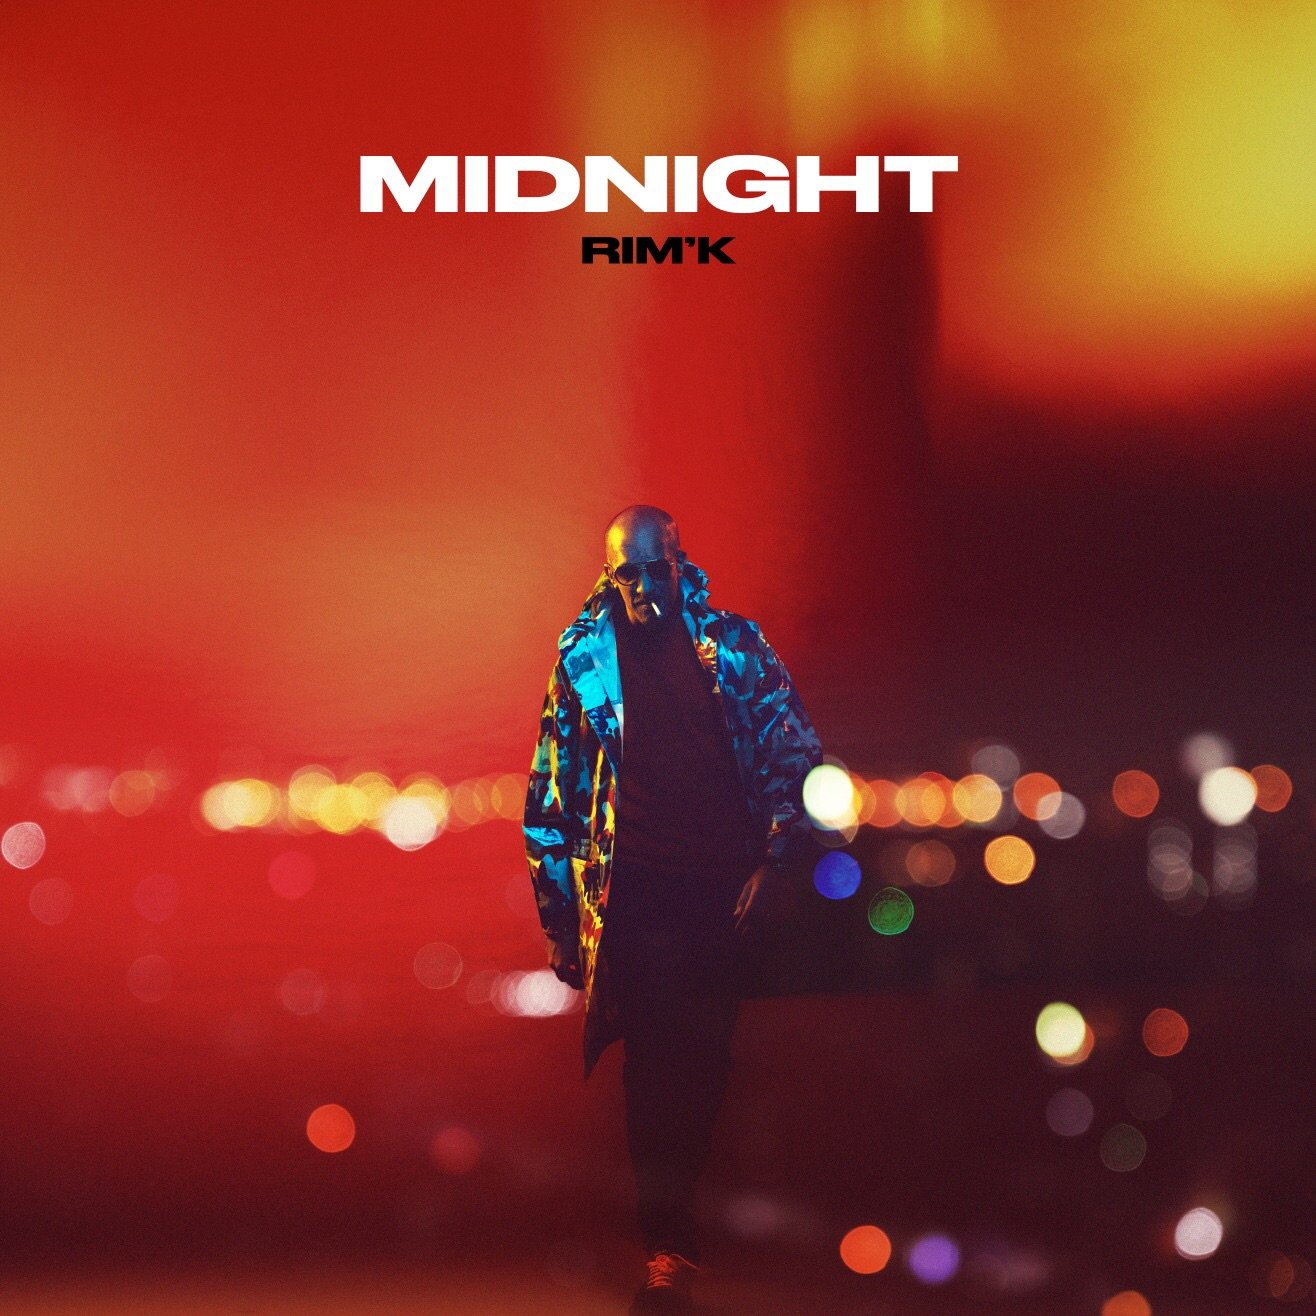 rimk-midnight - visu